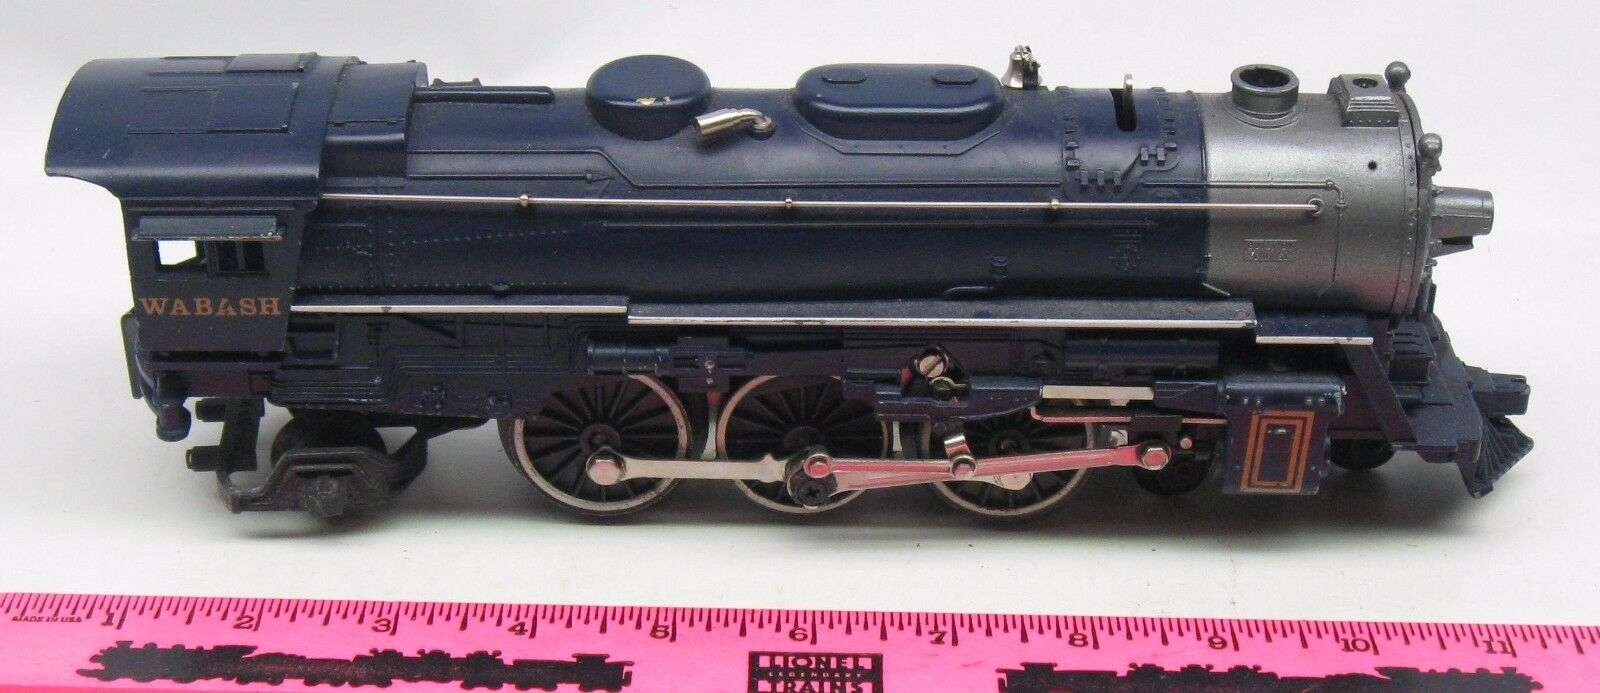 Lionel shell  Wabash Steam Locomotive 4-6-2